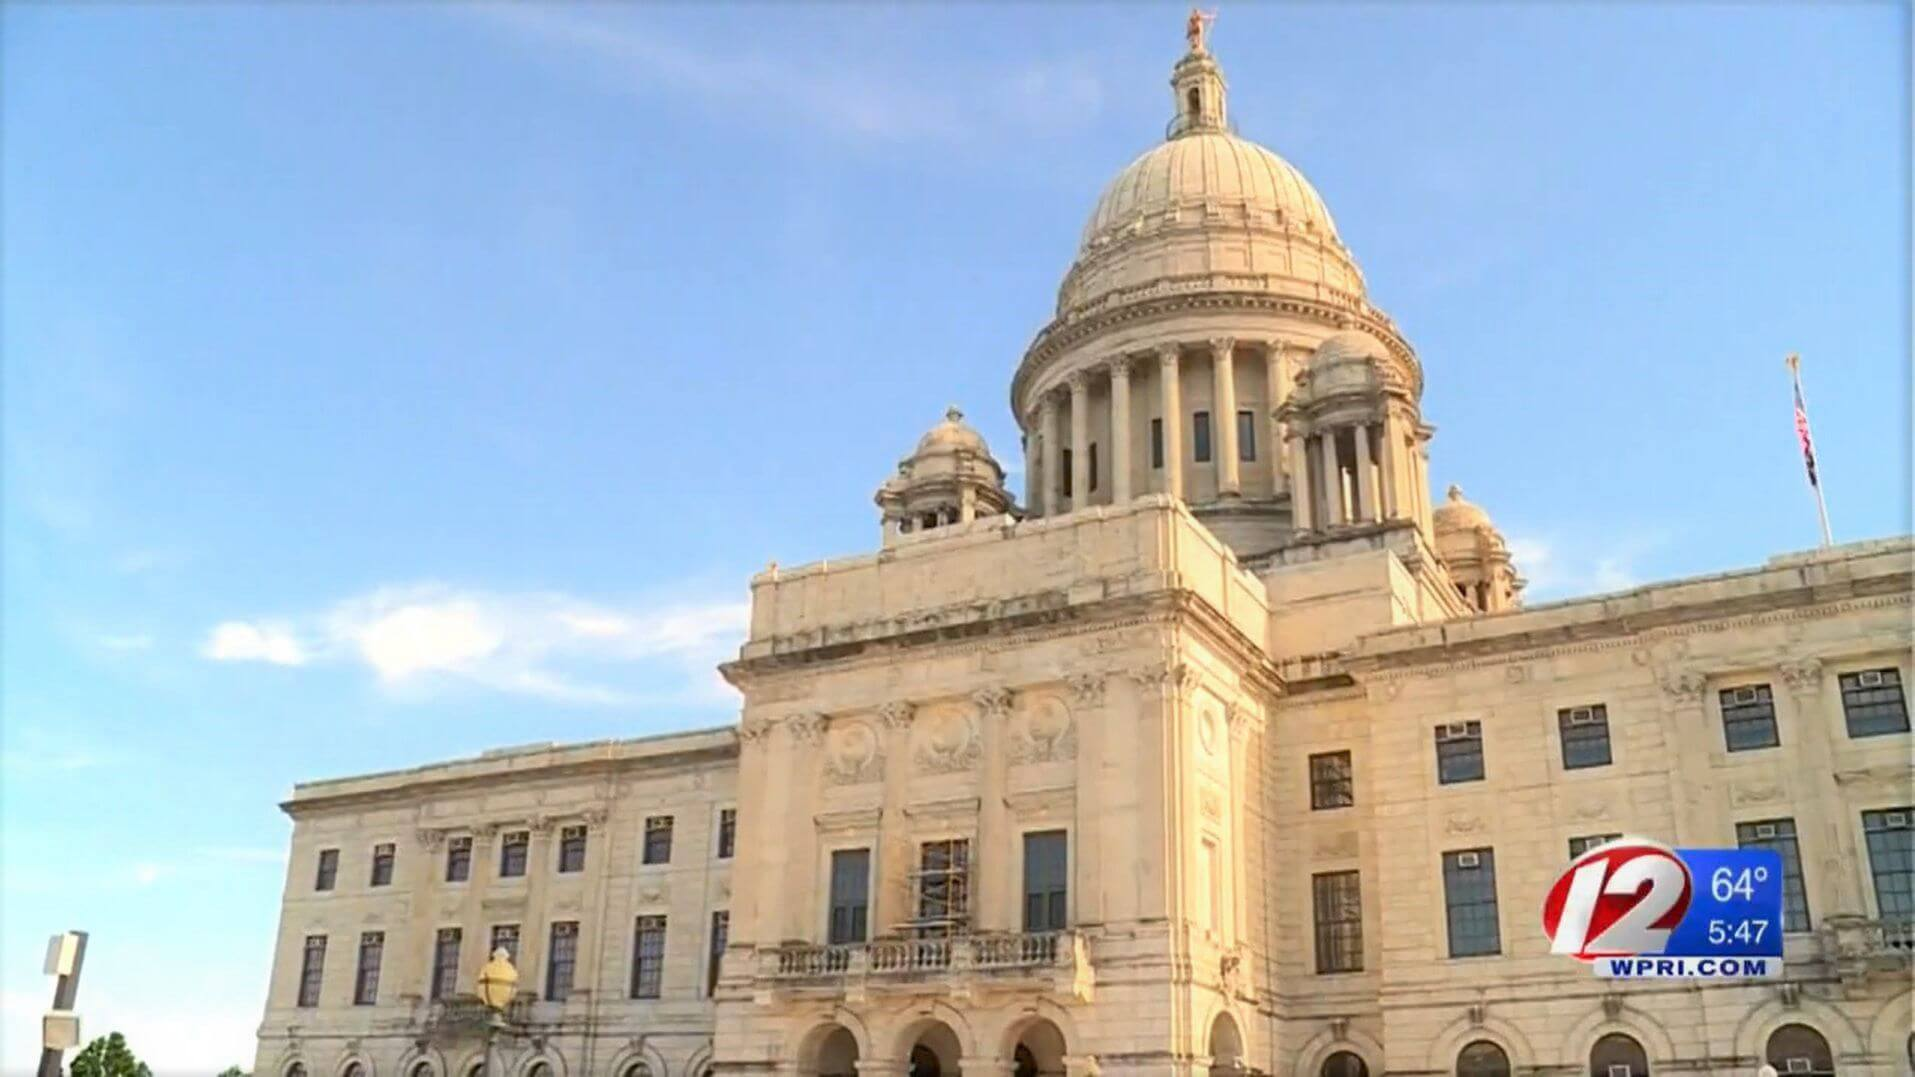 Channel 12 reports on our legislative initiative in Rhode Island